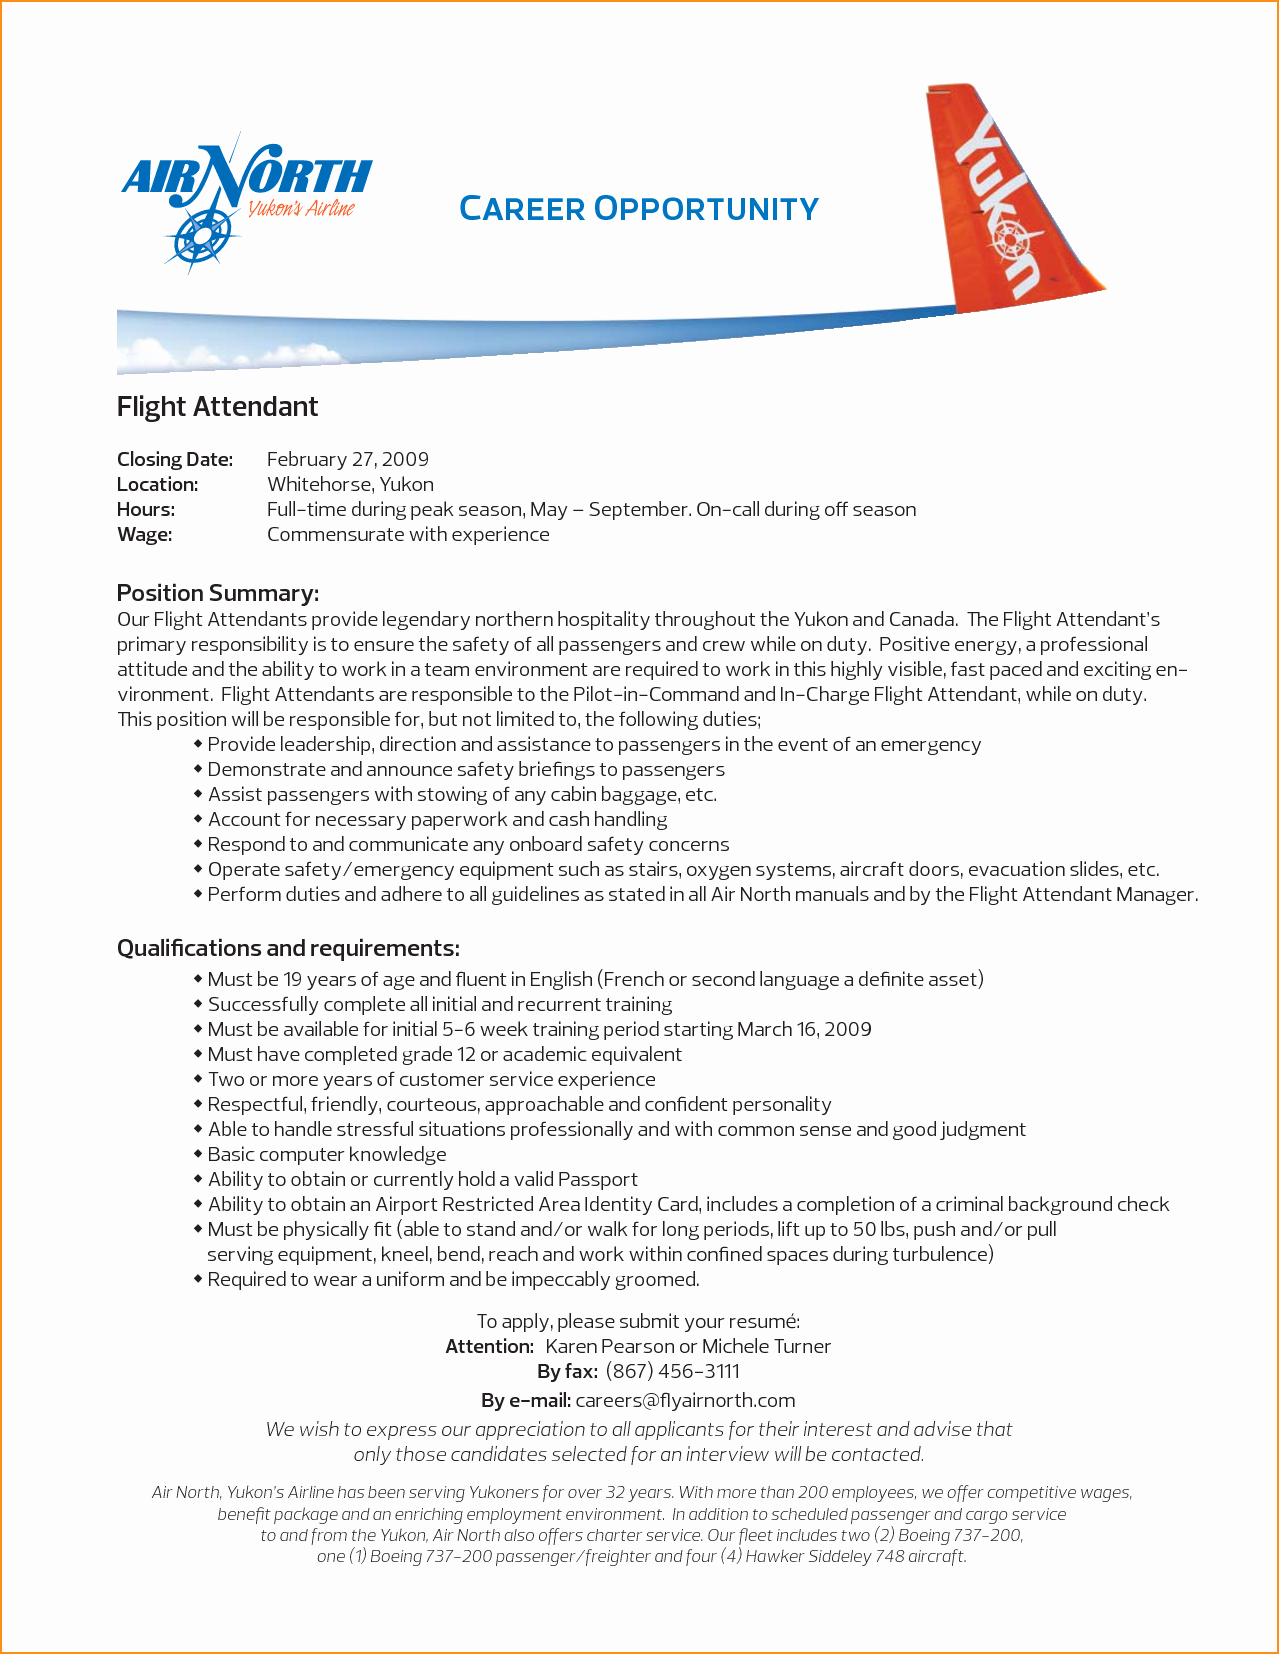 Flight attendant Cover Letter Sample New Cover Letter for Flight attendant Position with No